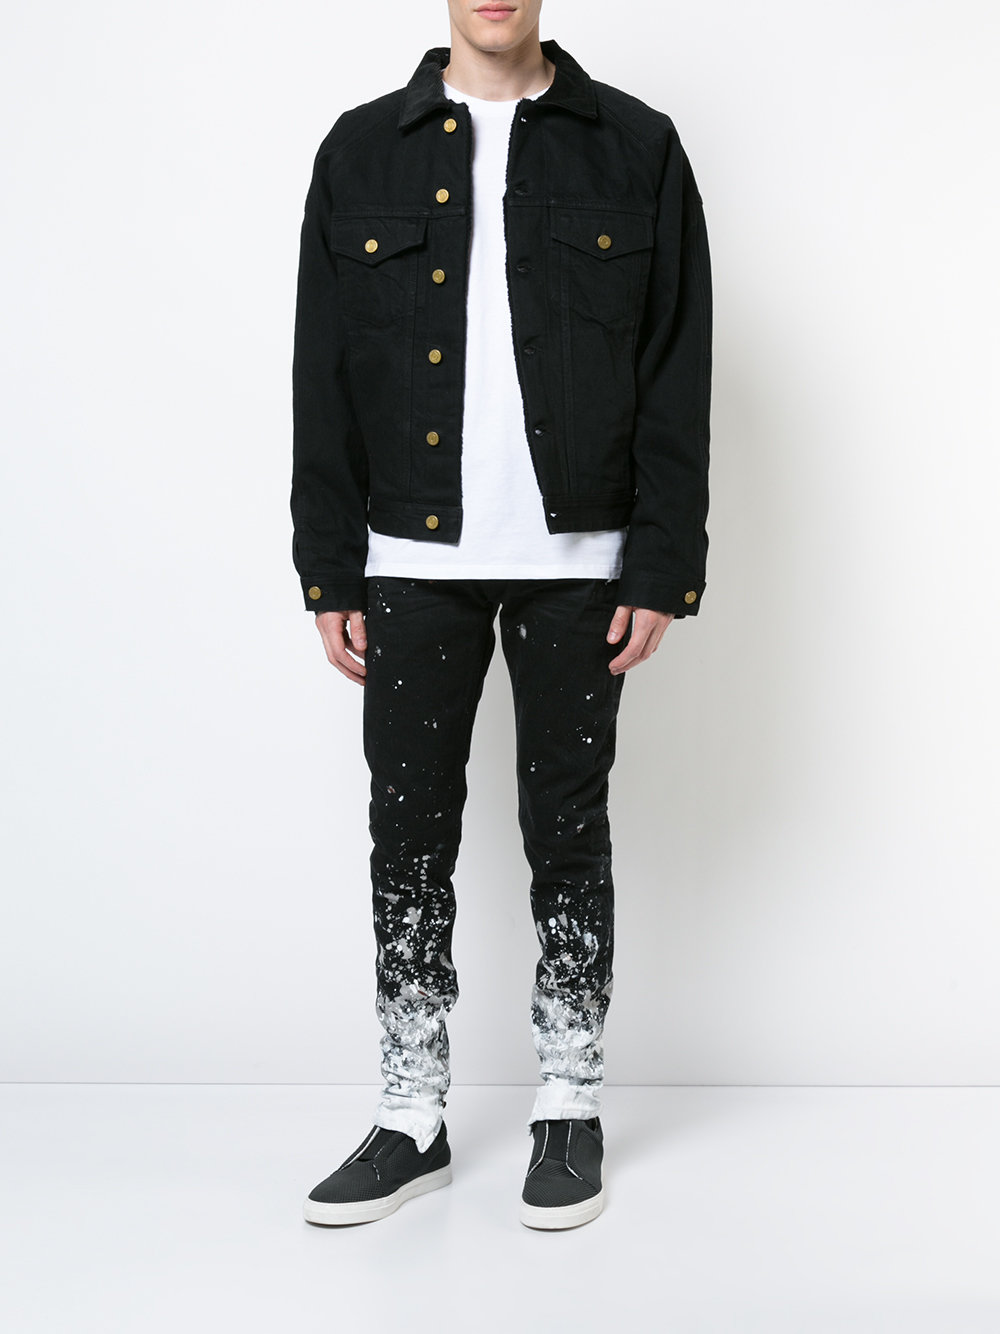 OEM superior quality own design black jeans jacket